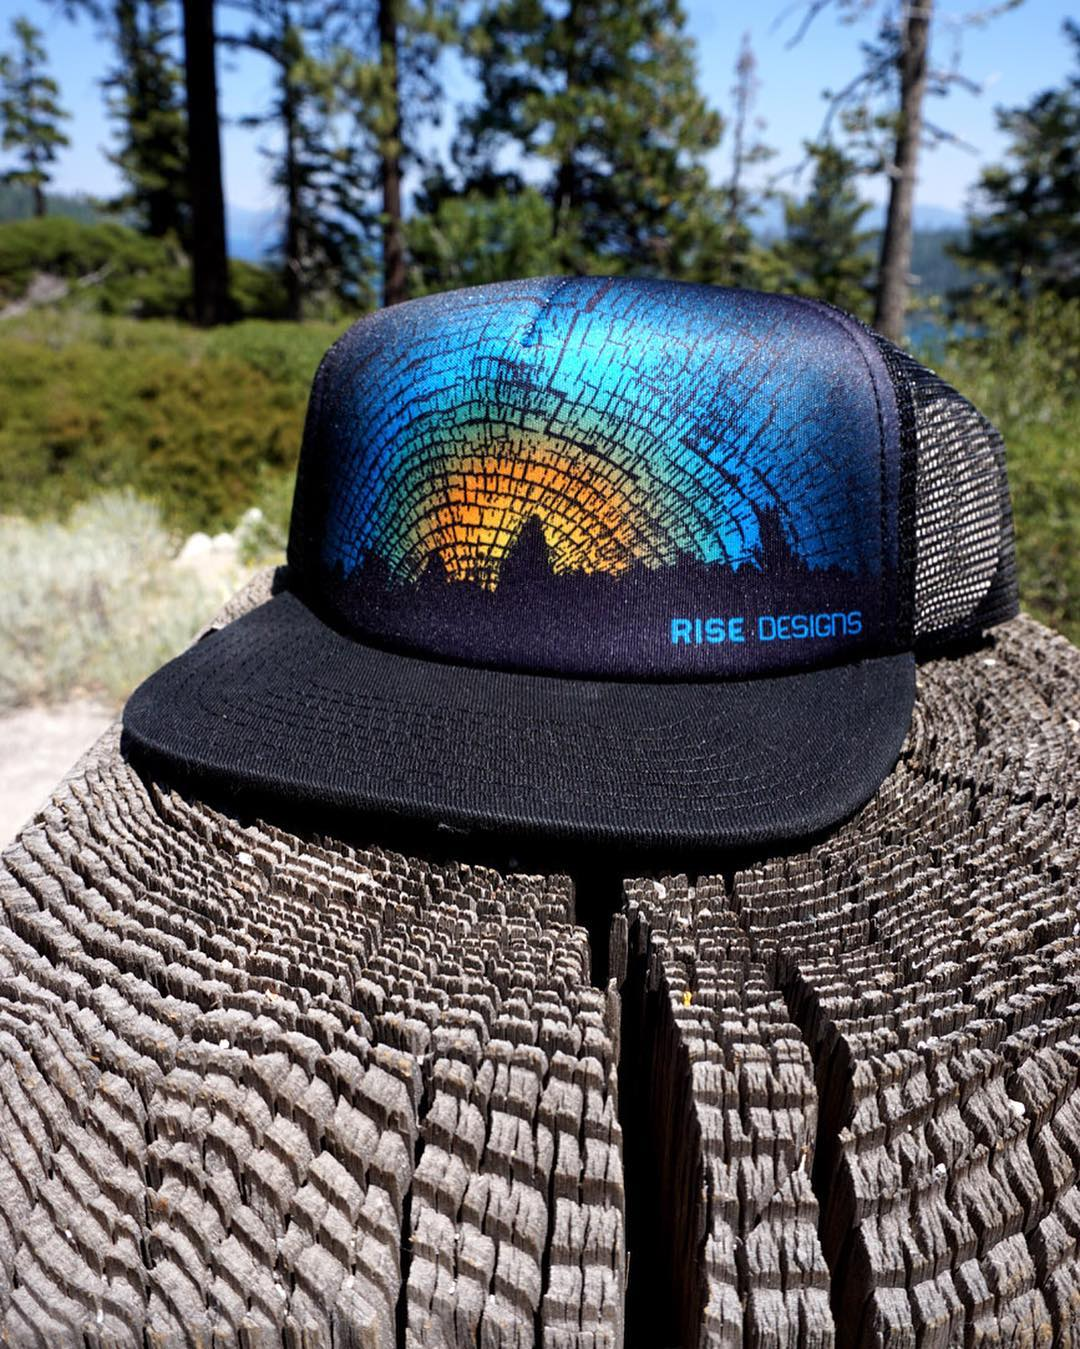 The Daybreak Trucker - now available in our shop or on our website. #truckerhat #drivenbydesign #inspiredbynature #risedesigns #risedesignstahoe #woodgrain #flatbrim #trees #getoutside